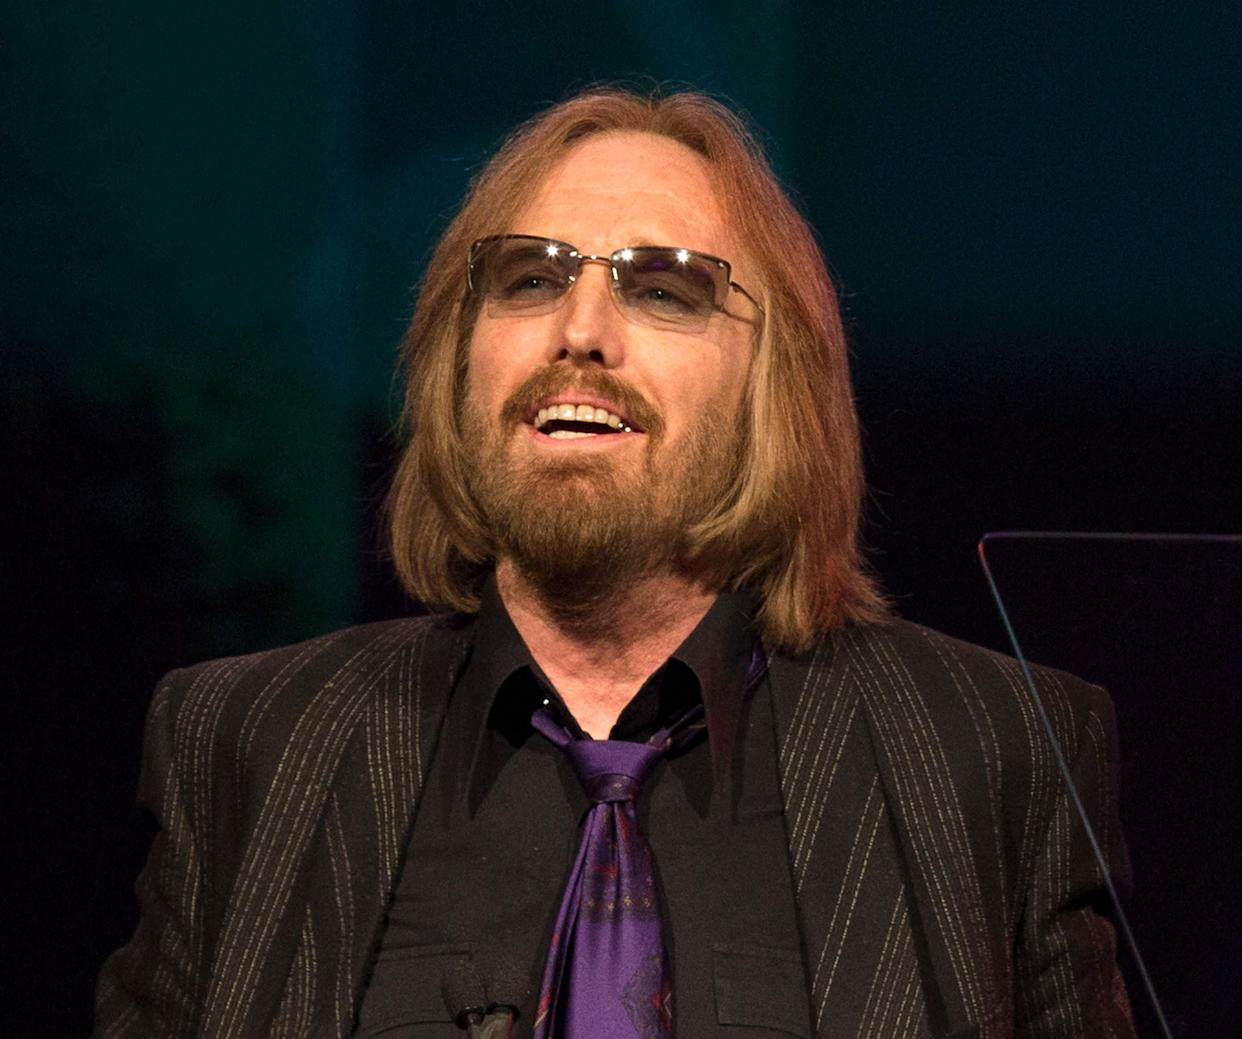 Tom Petty, the Grammy Award-winning lead singer of Tom Petty and the Heartbreakers, died on October 2, 2017. He was 66.